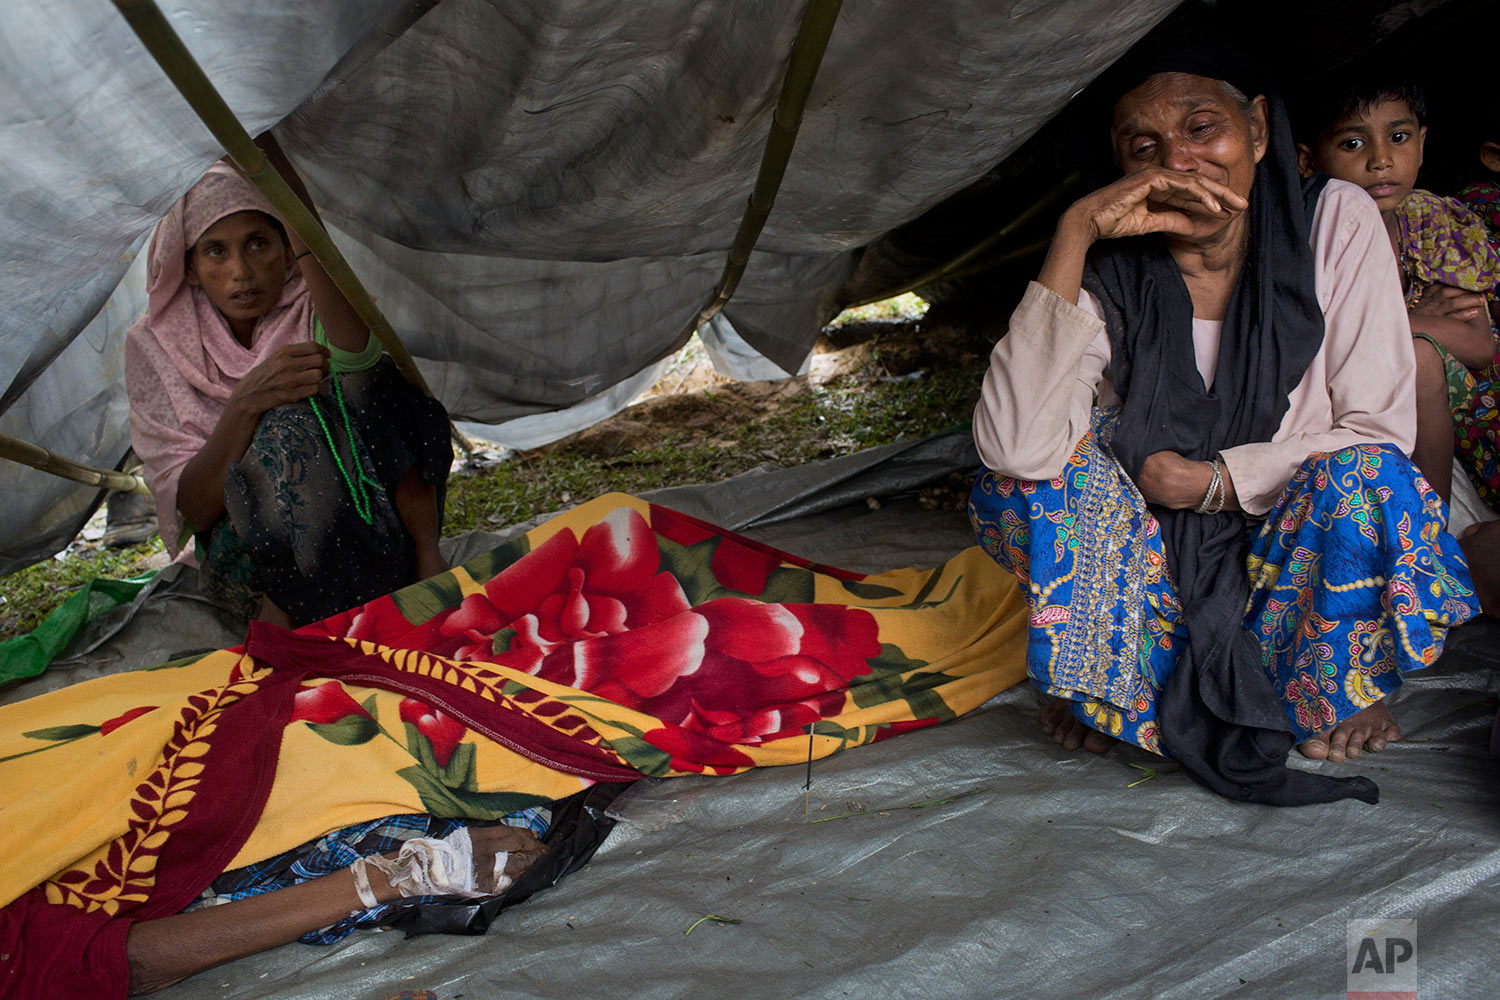 Newly arrived Rohingyas mourn by the body of a family member Ali Akbar, 70, in a makeshift tent in Kutupalong, Bangladesh, Friday, Sept. 8, 2017. According to family members, Akbar was shot in the hand and beaten with rifle butts by Myanmar soldiers before the family escaped to Bangladesh. He died today. (AP Photo/Bernat Armangue)